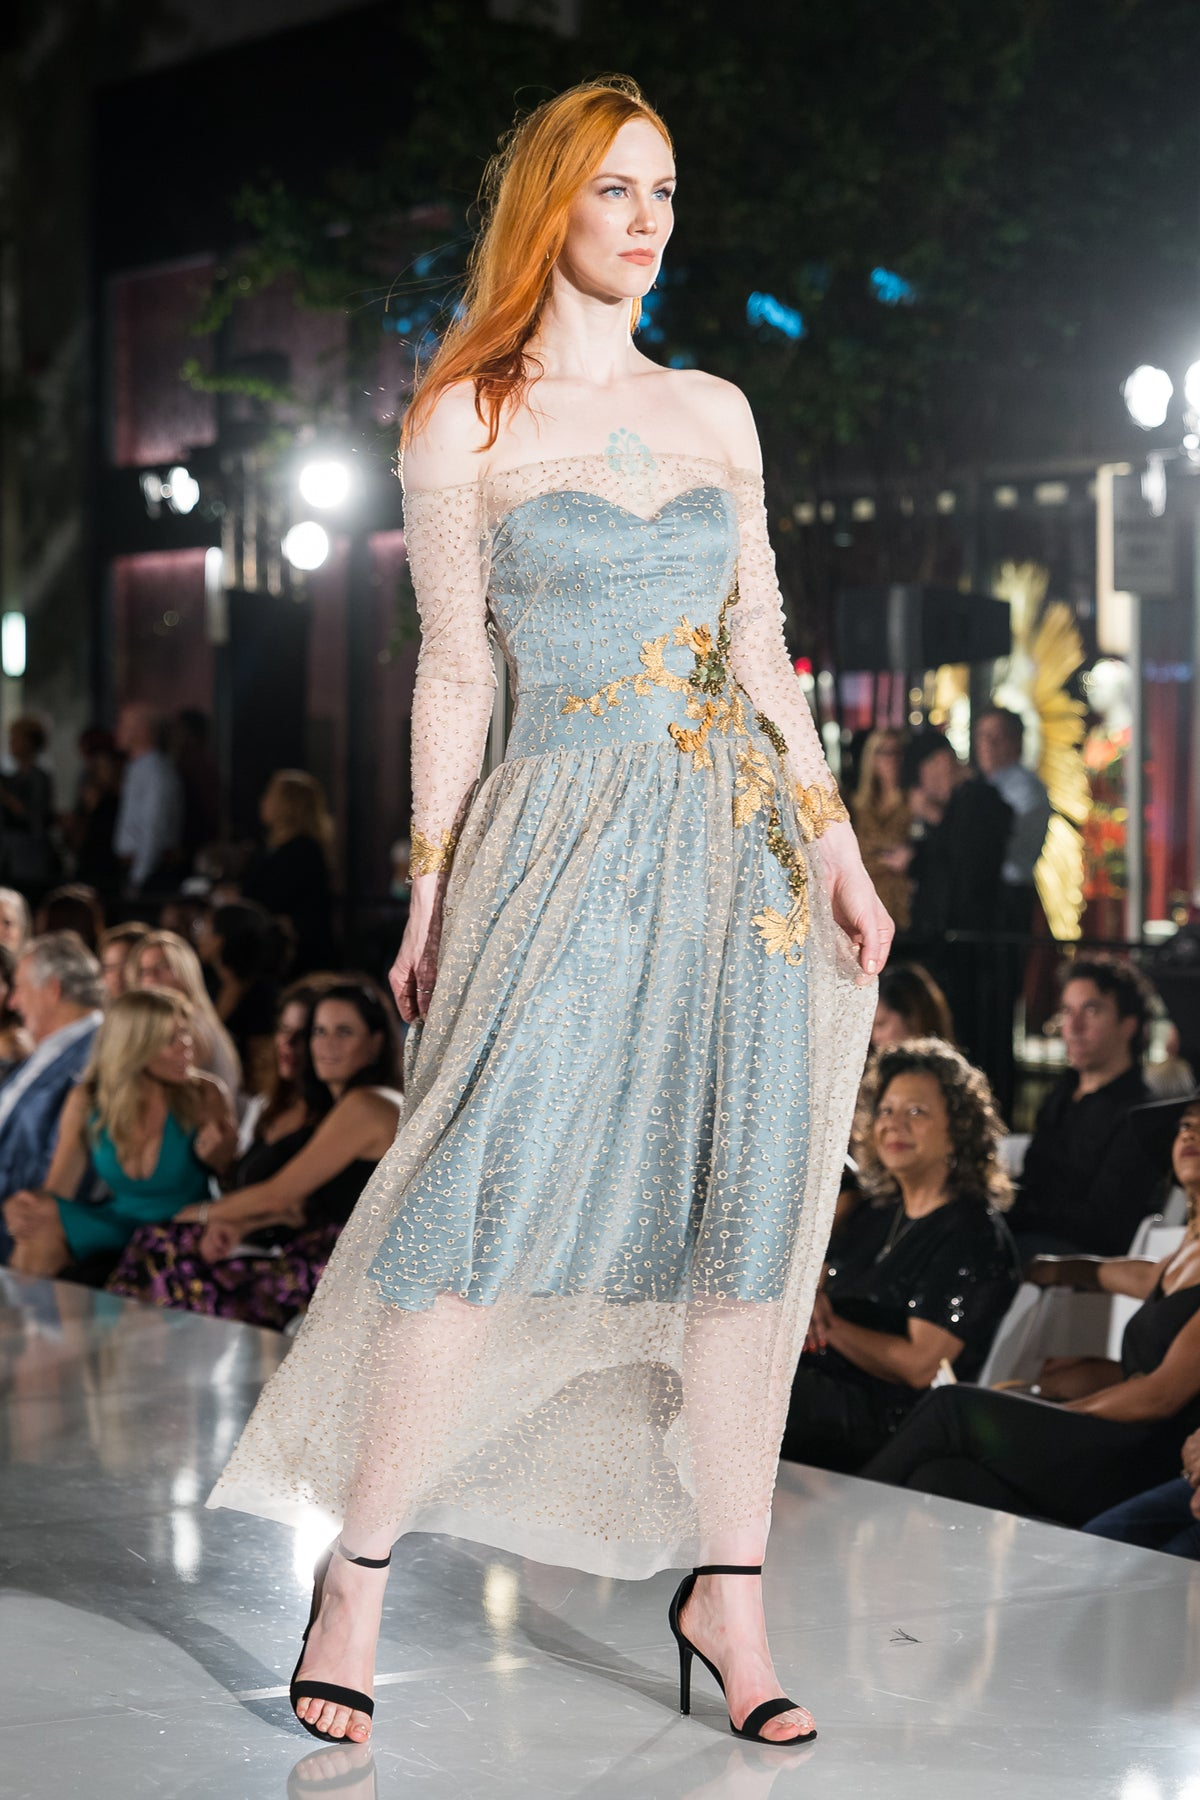 Pema Dress | Dusty Teal with Gold Constellation Embroidery